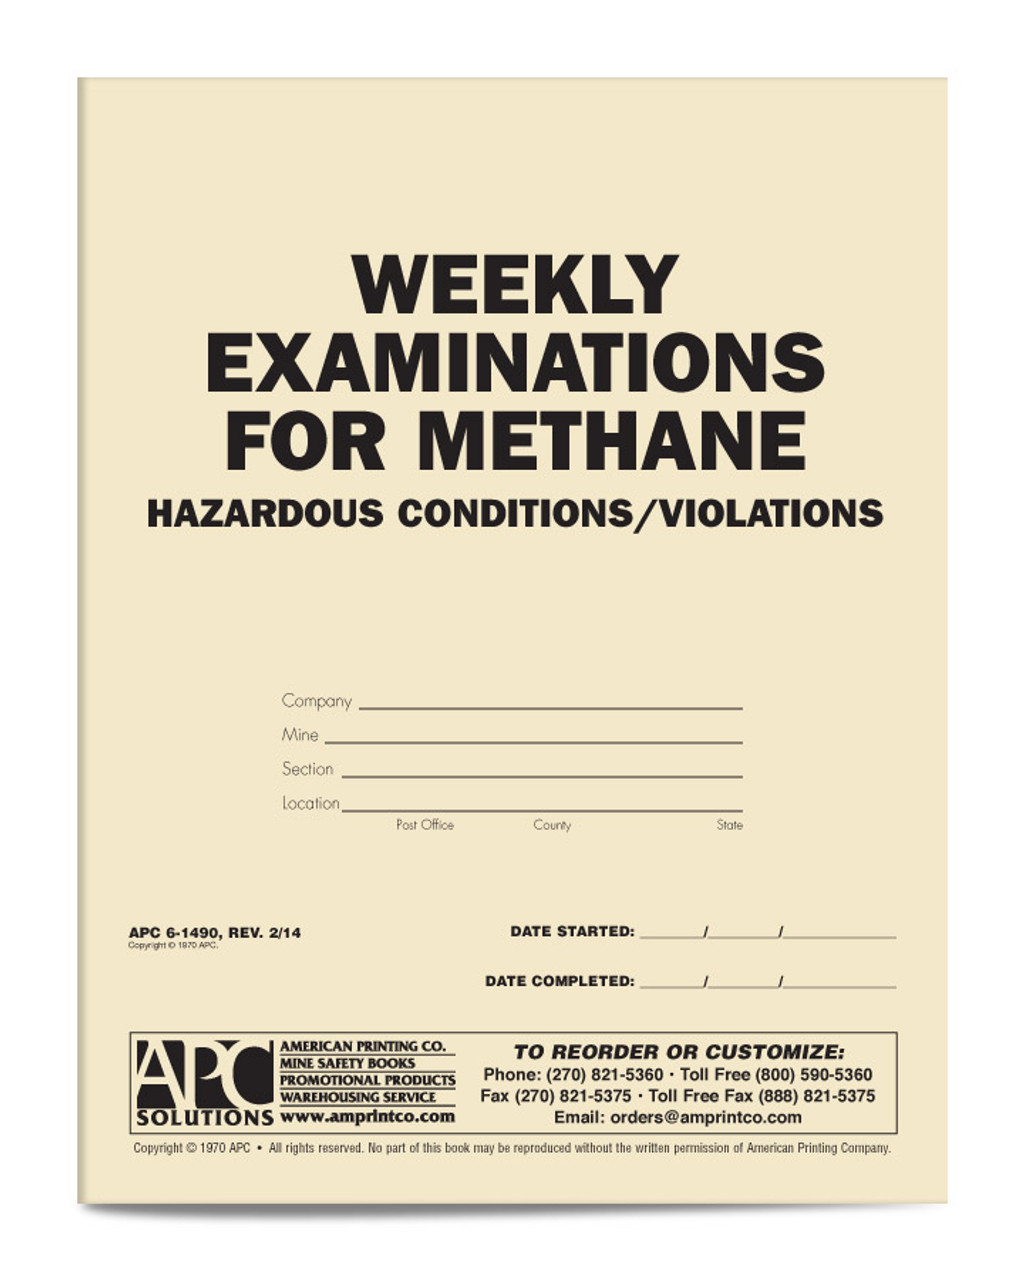 APC 6-1490: Weekly Examinations for Methane Hazardous Conditions/Violations